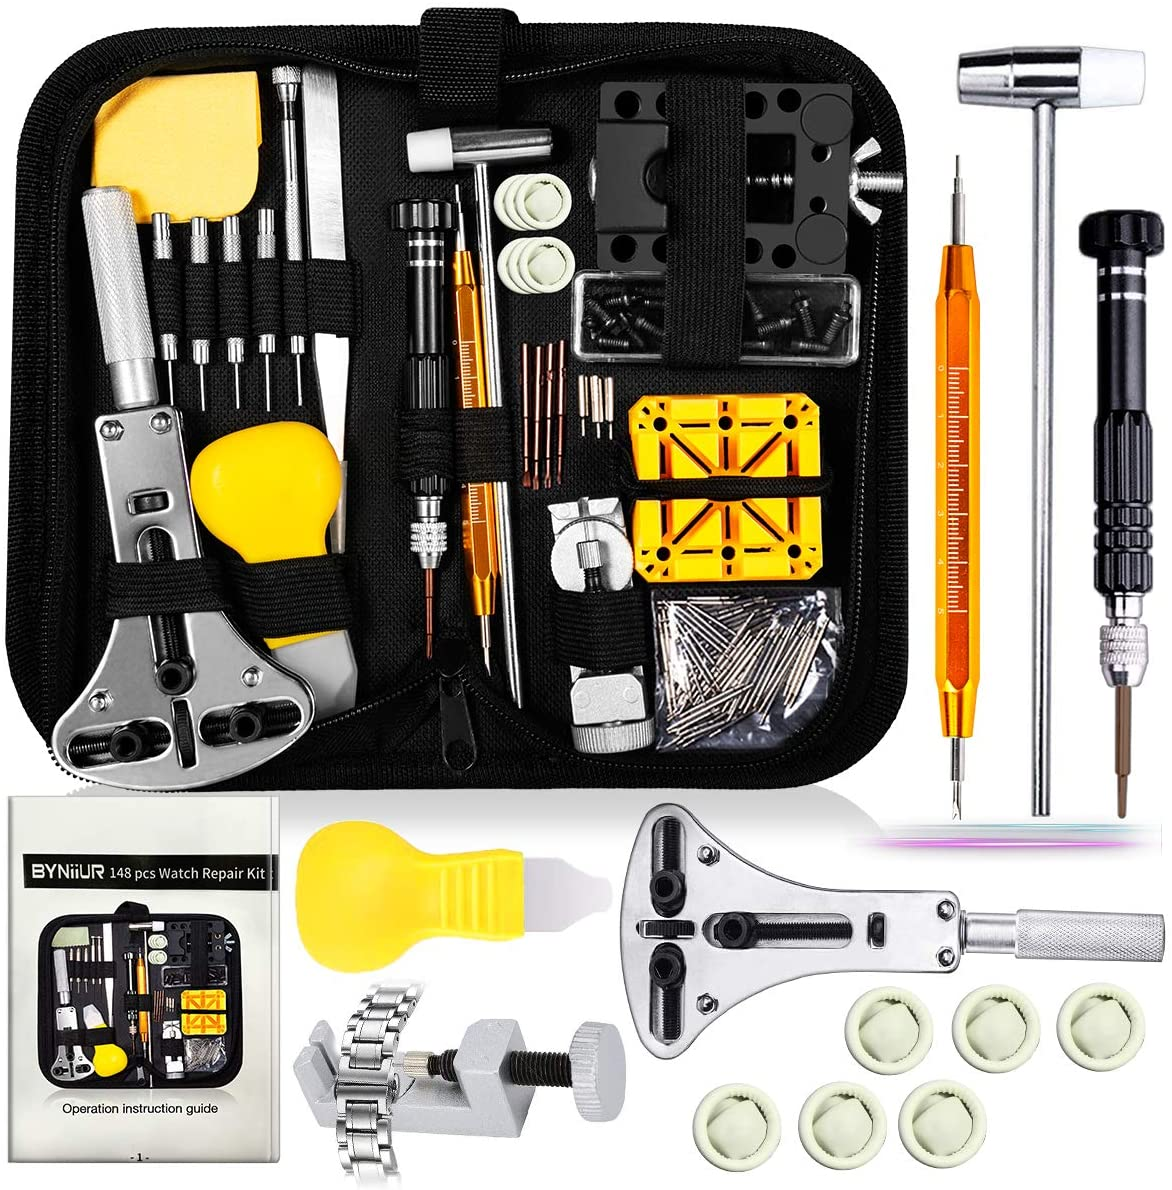 Watch Repair Kit, Watch Case Opener Spring Bar Tools